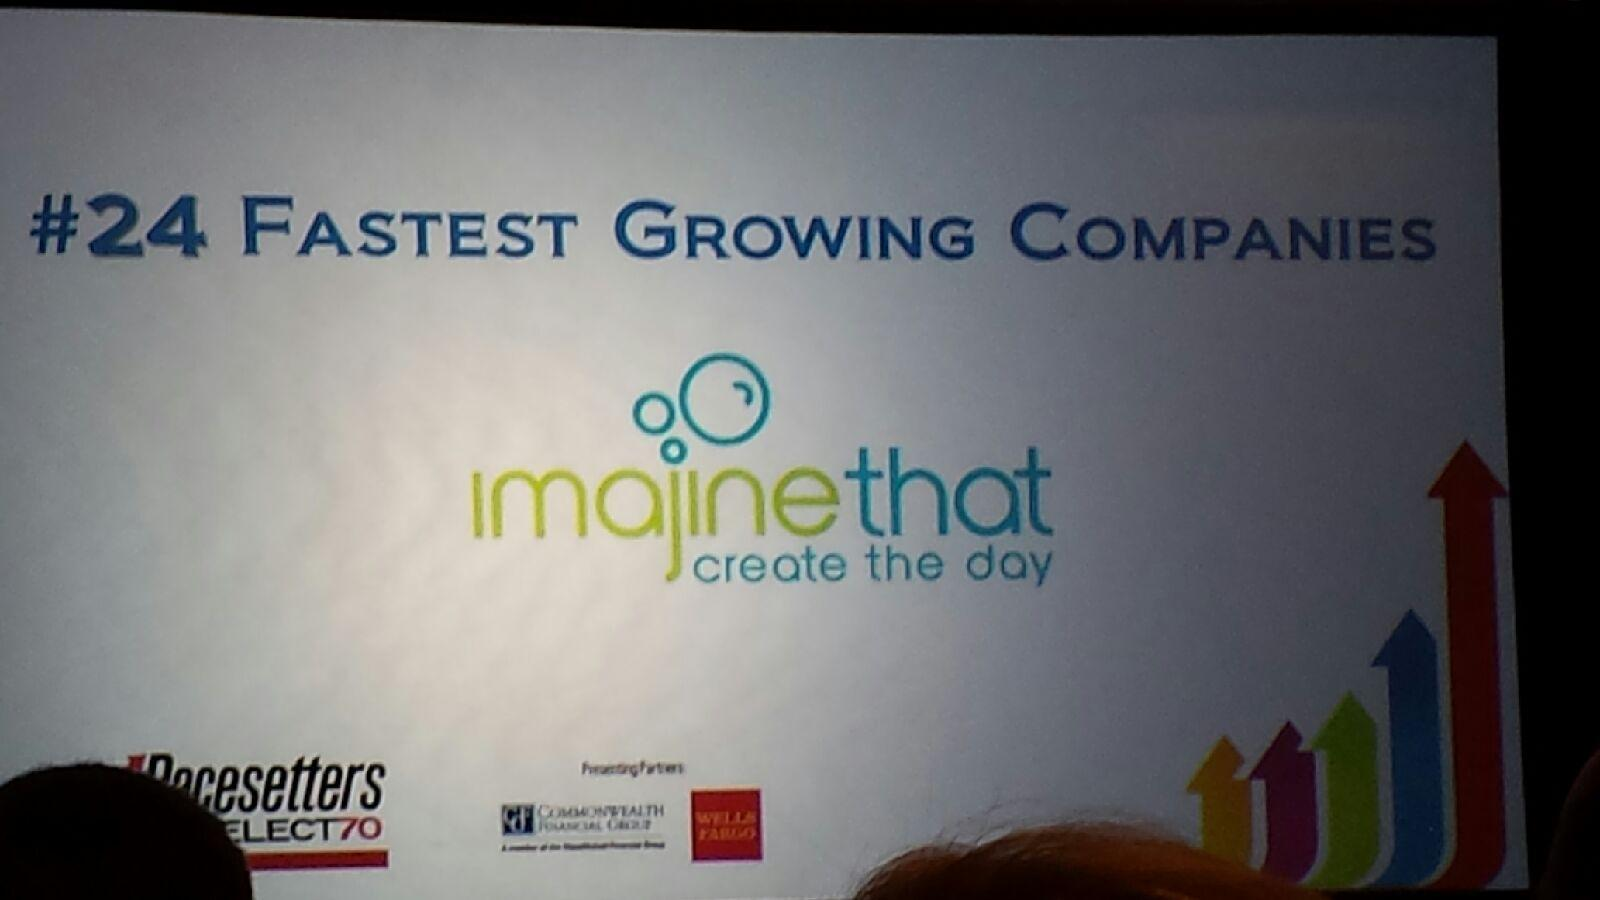 Imajine That is named #24 on the list of Boston's fastest growing companies by the Boston Business Journal.